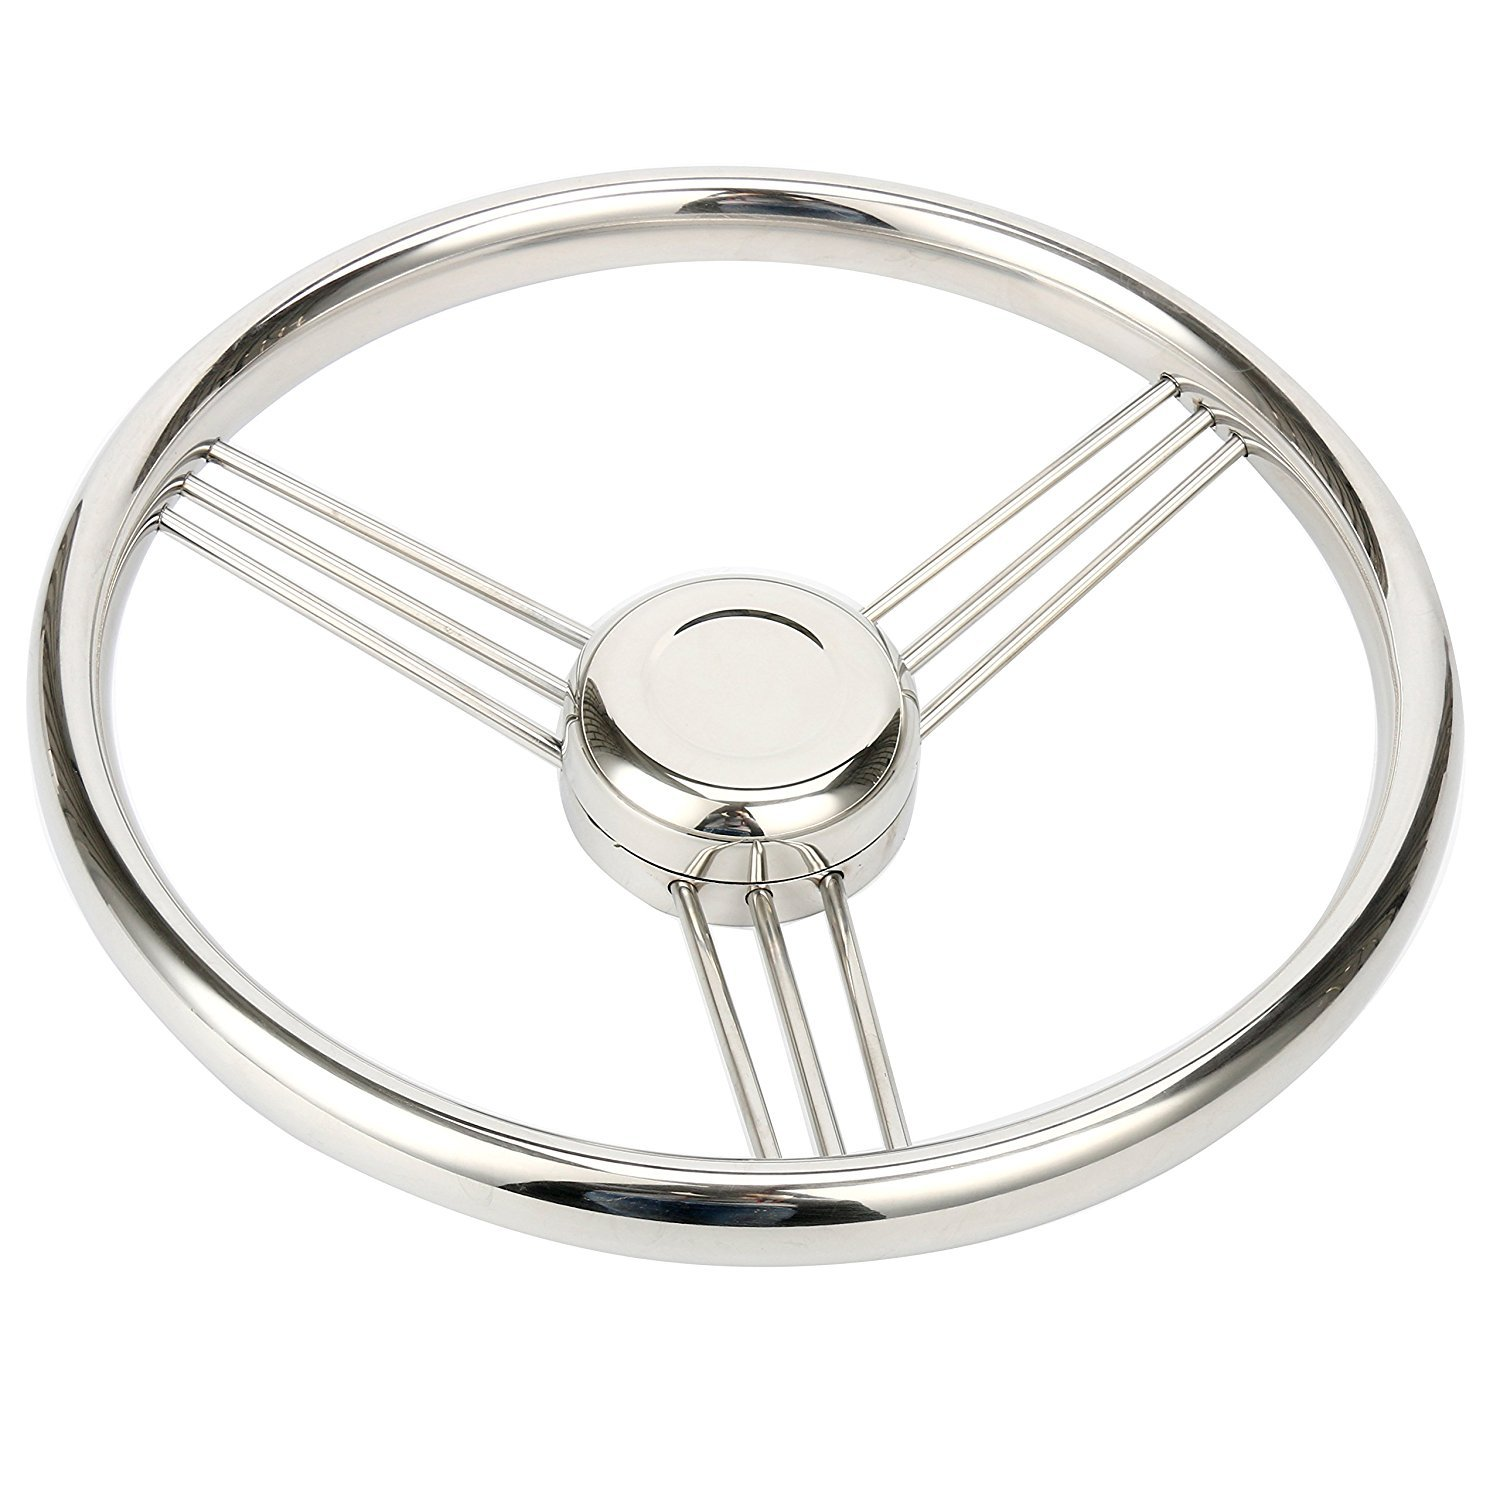 Amarine-made 13.5 Inch 9 Spoke Stainless Boat Steering Wheel - 10 Degree - 9500S380